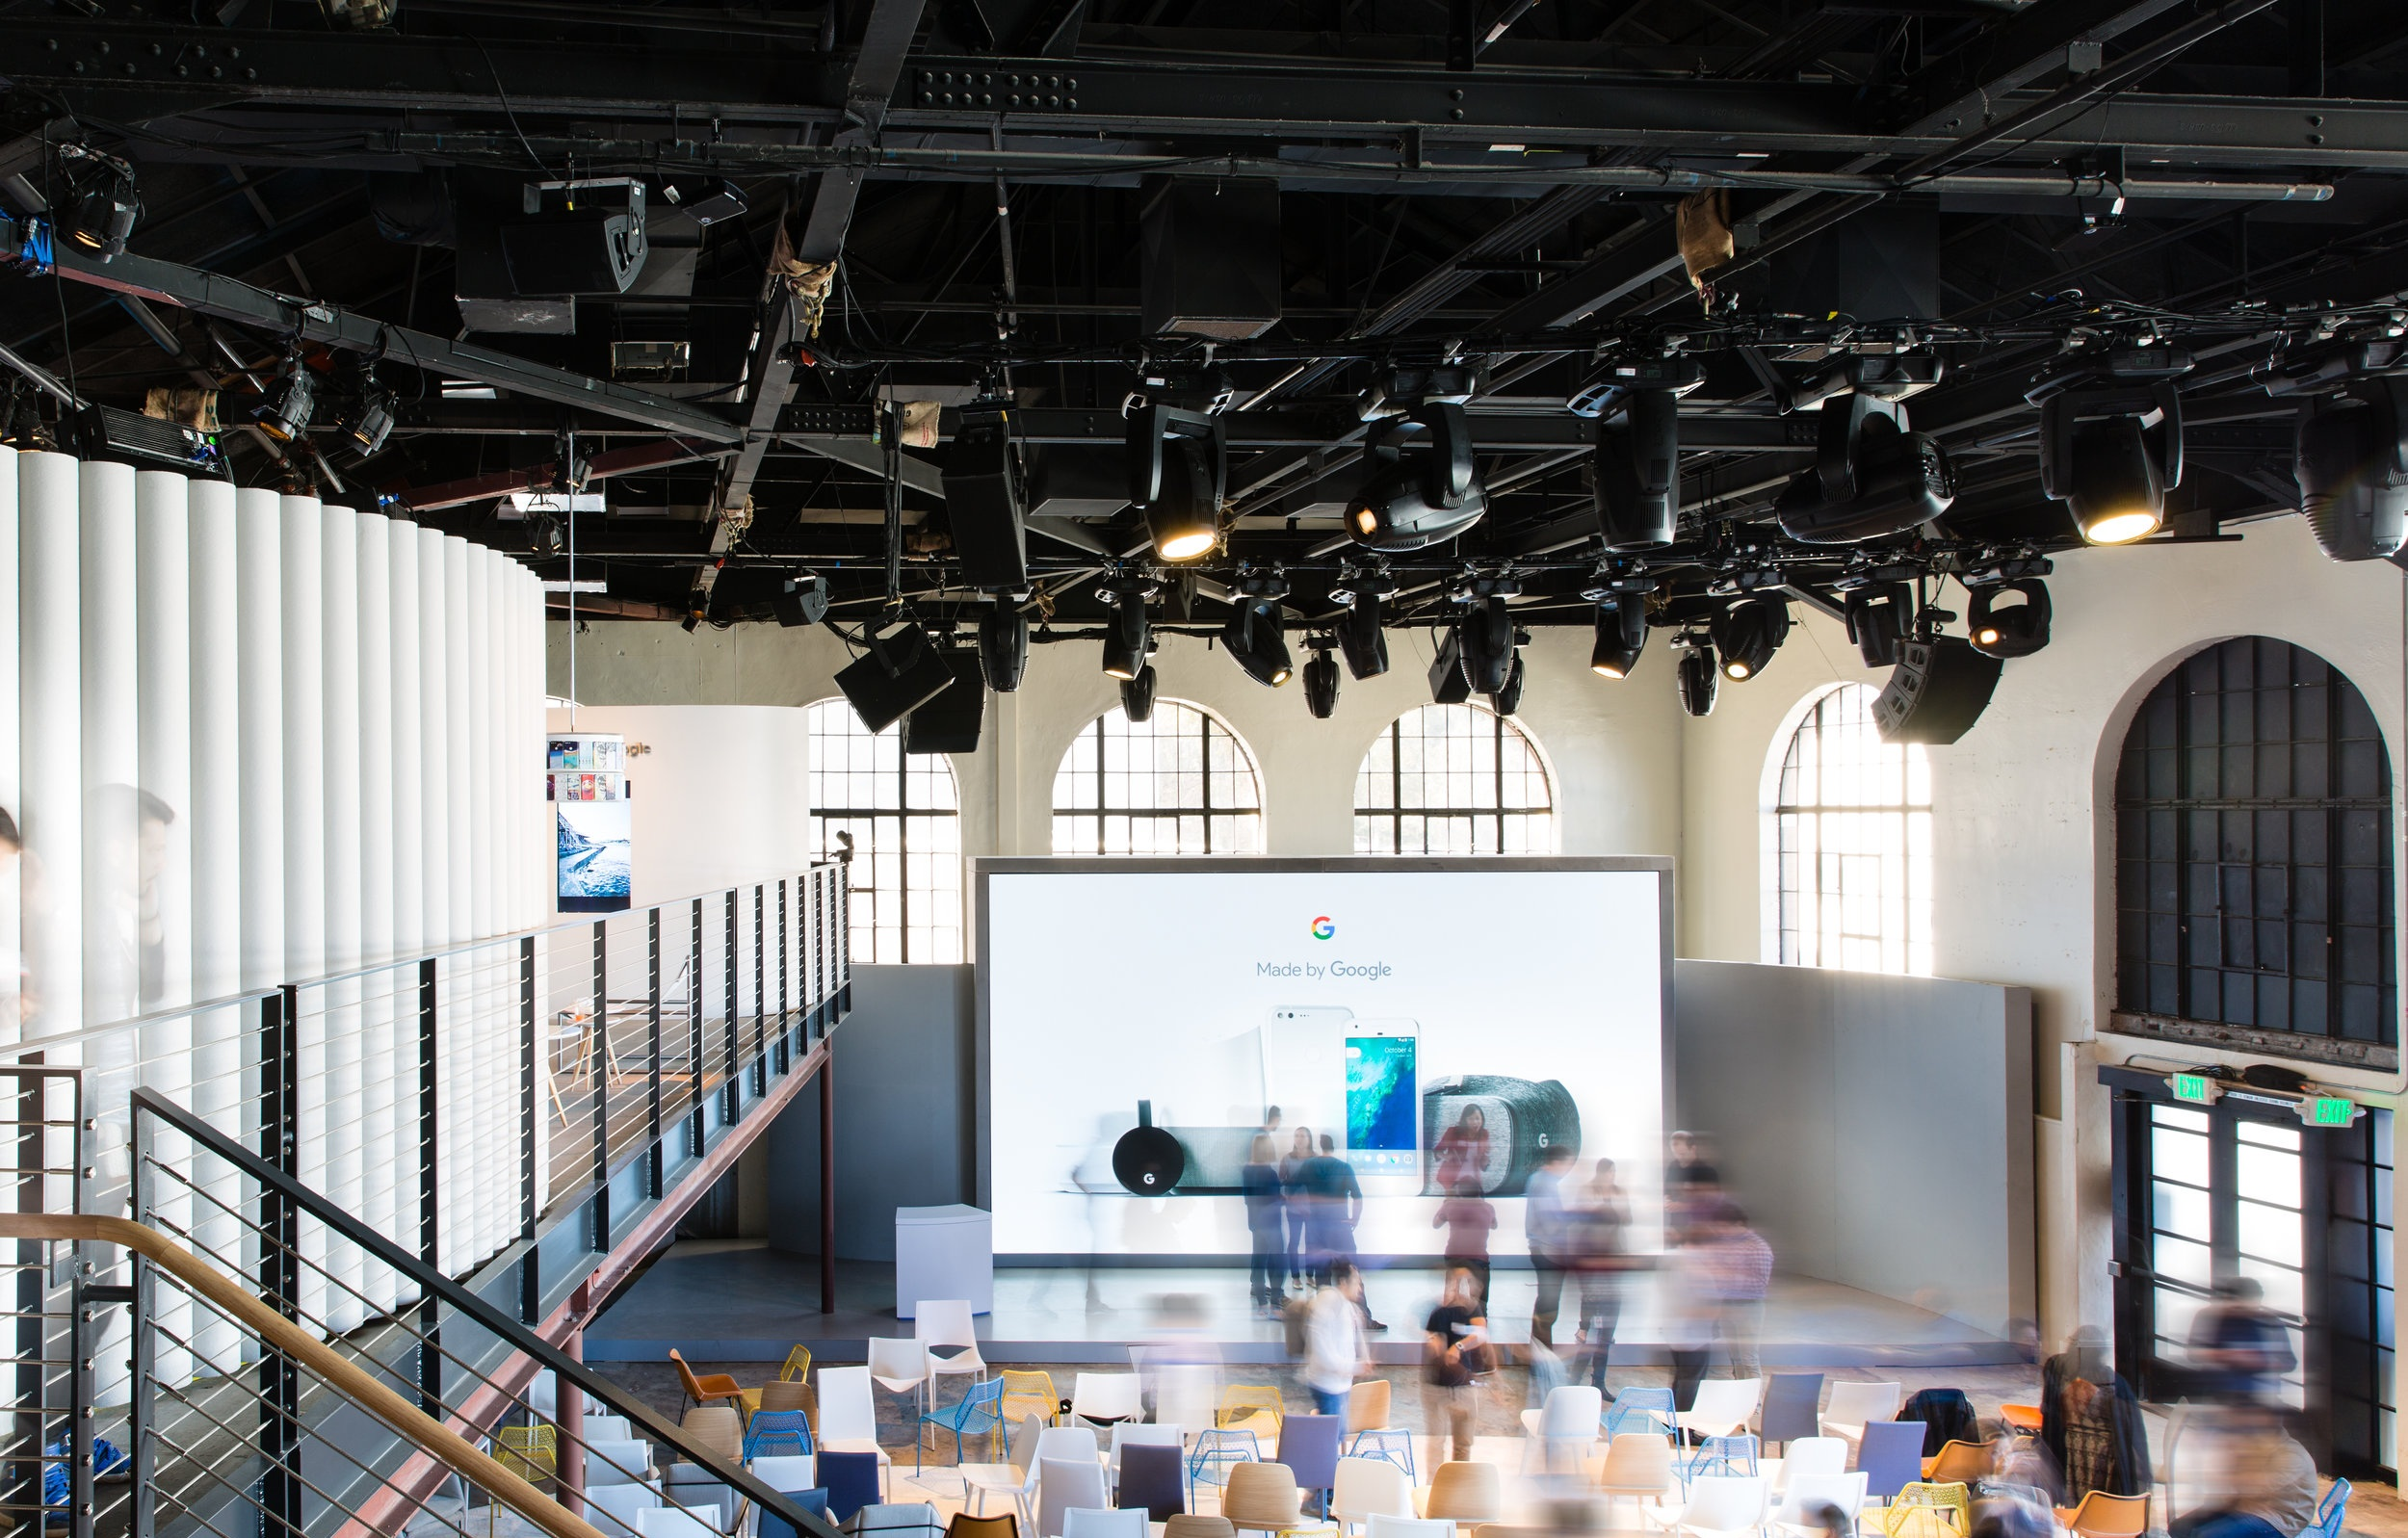 Skylight at Ghirardelli Square_Google Home Product Launch_Suzanna Scott.jpg